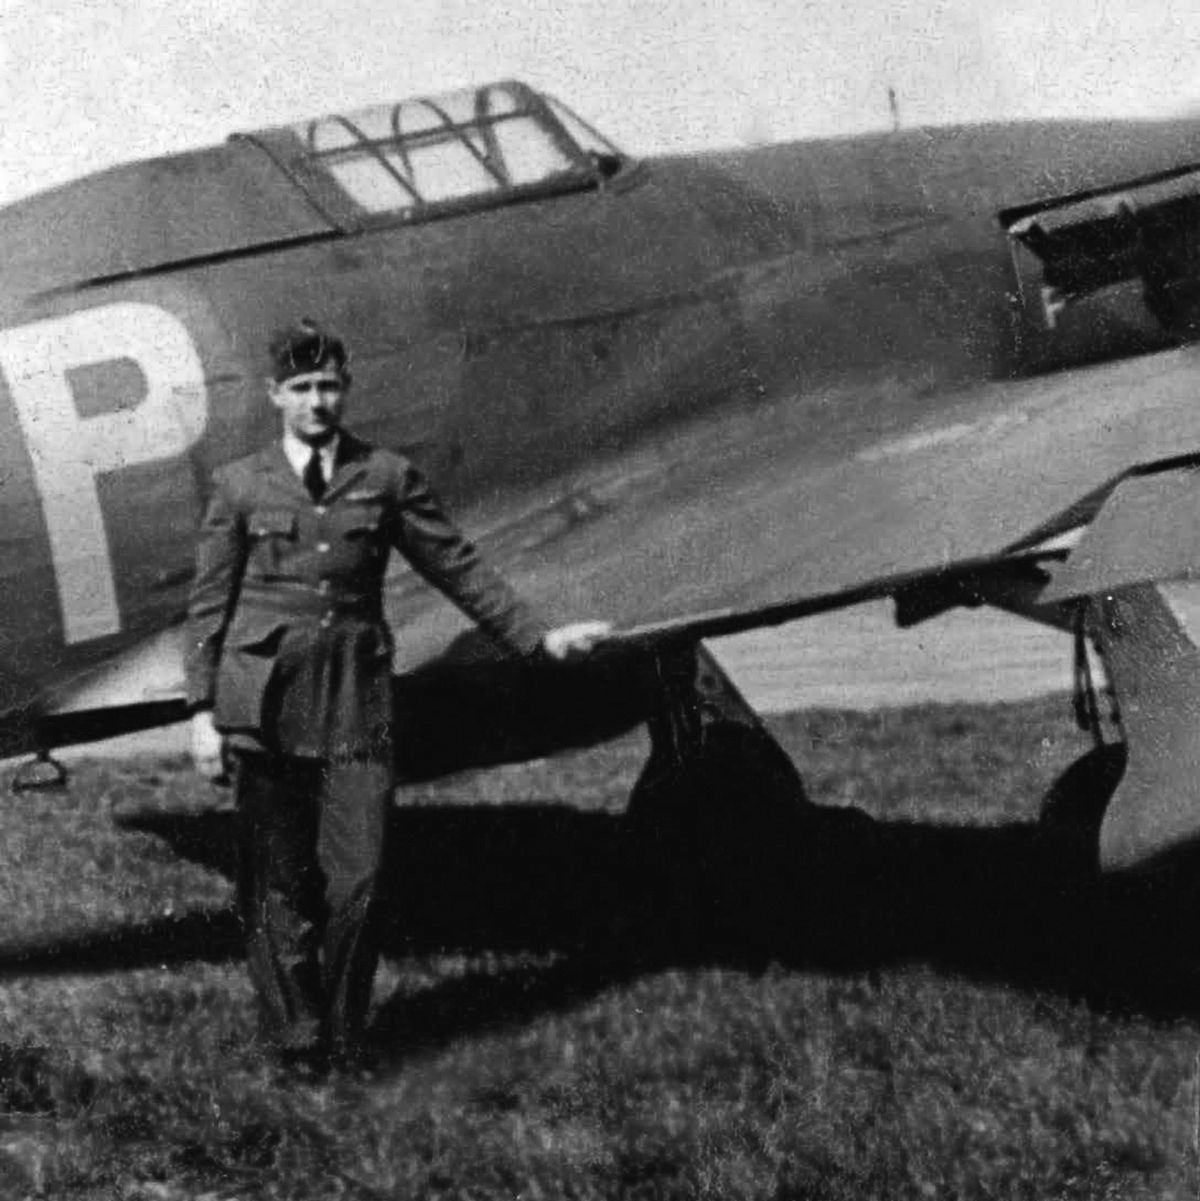 Jack Hamar was the pilot of a Hawker Hurricane fighter.